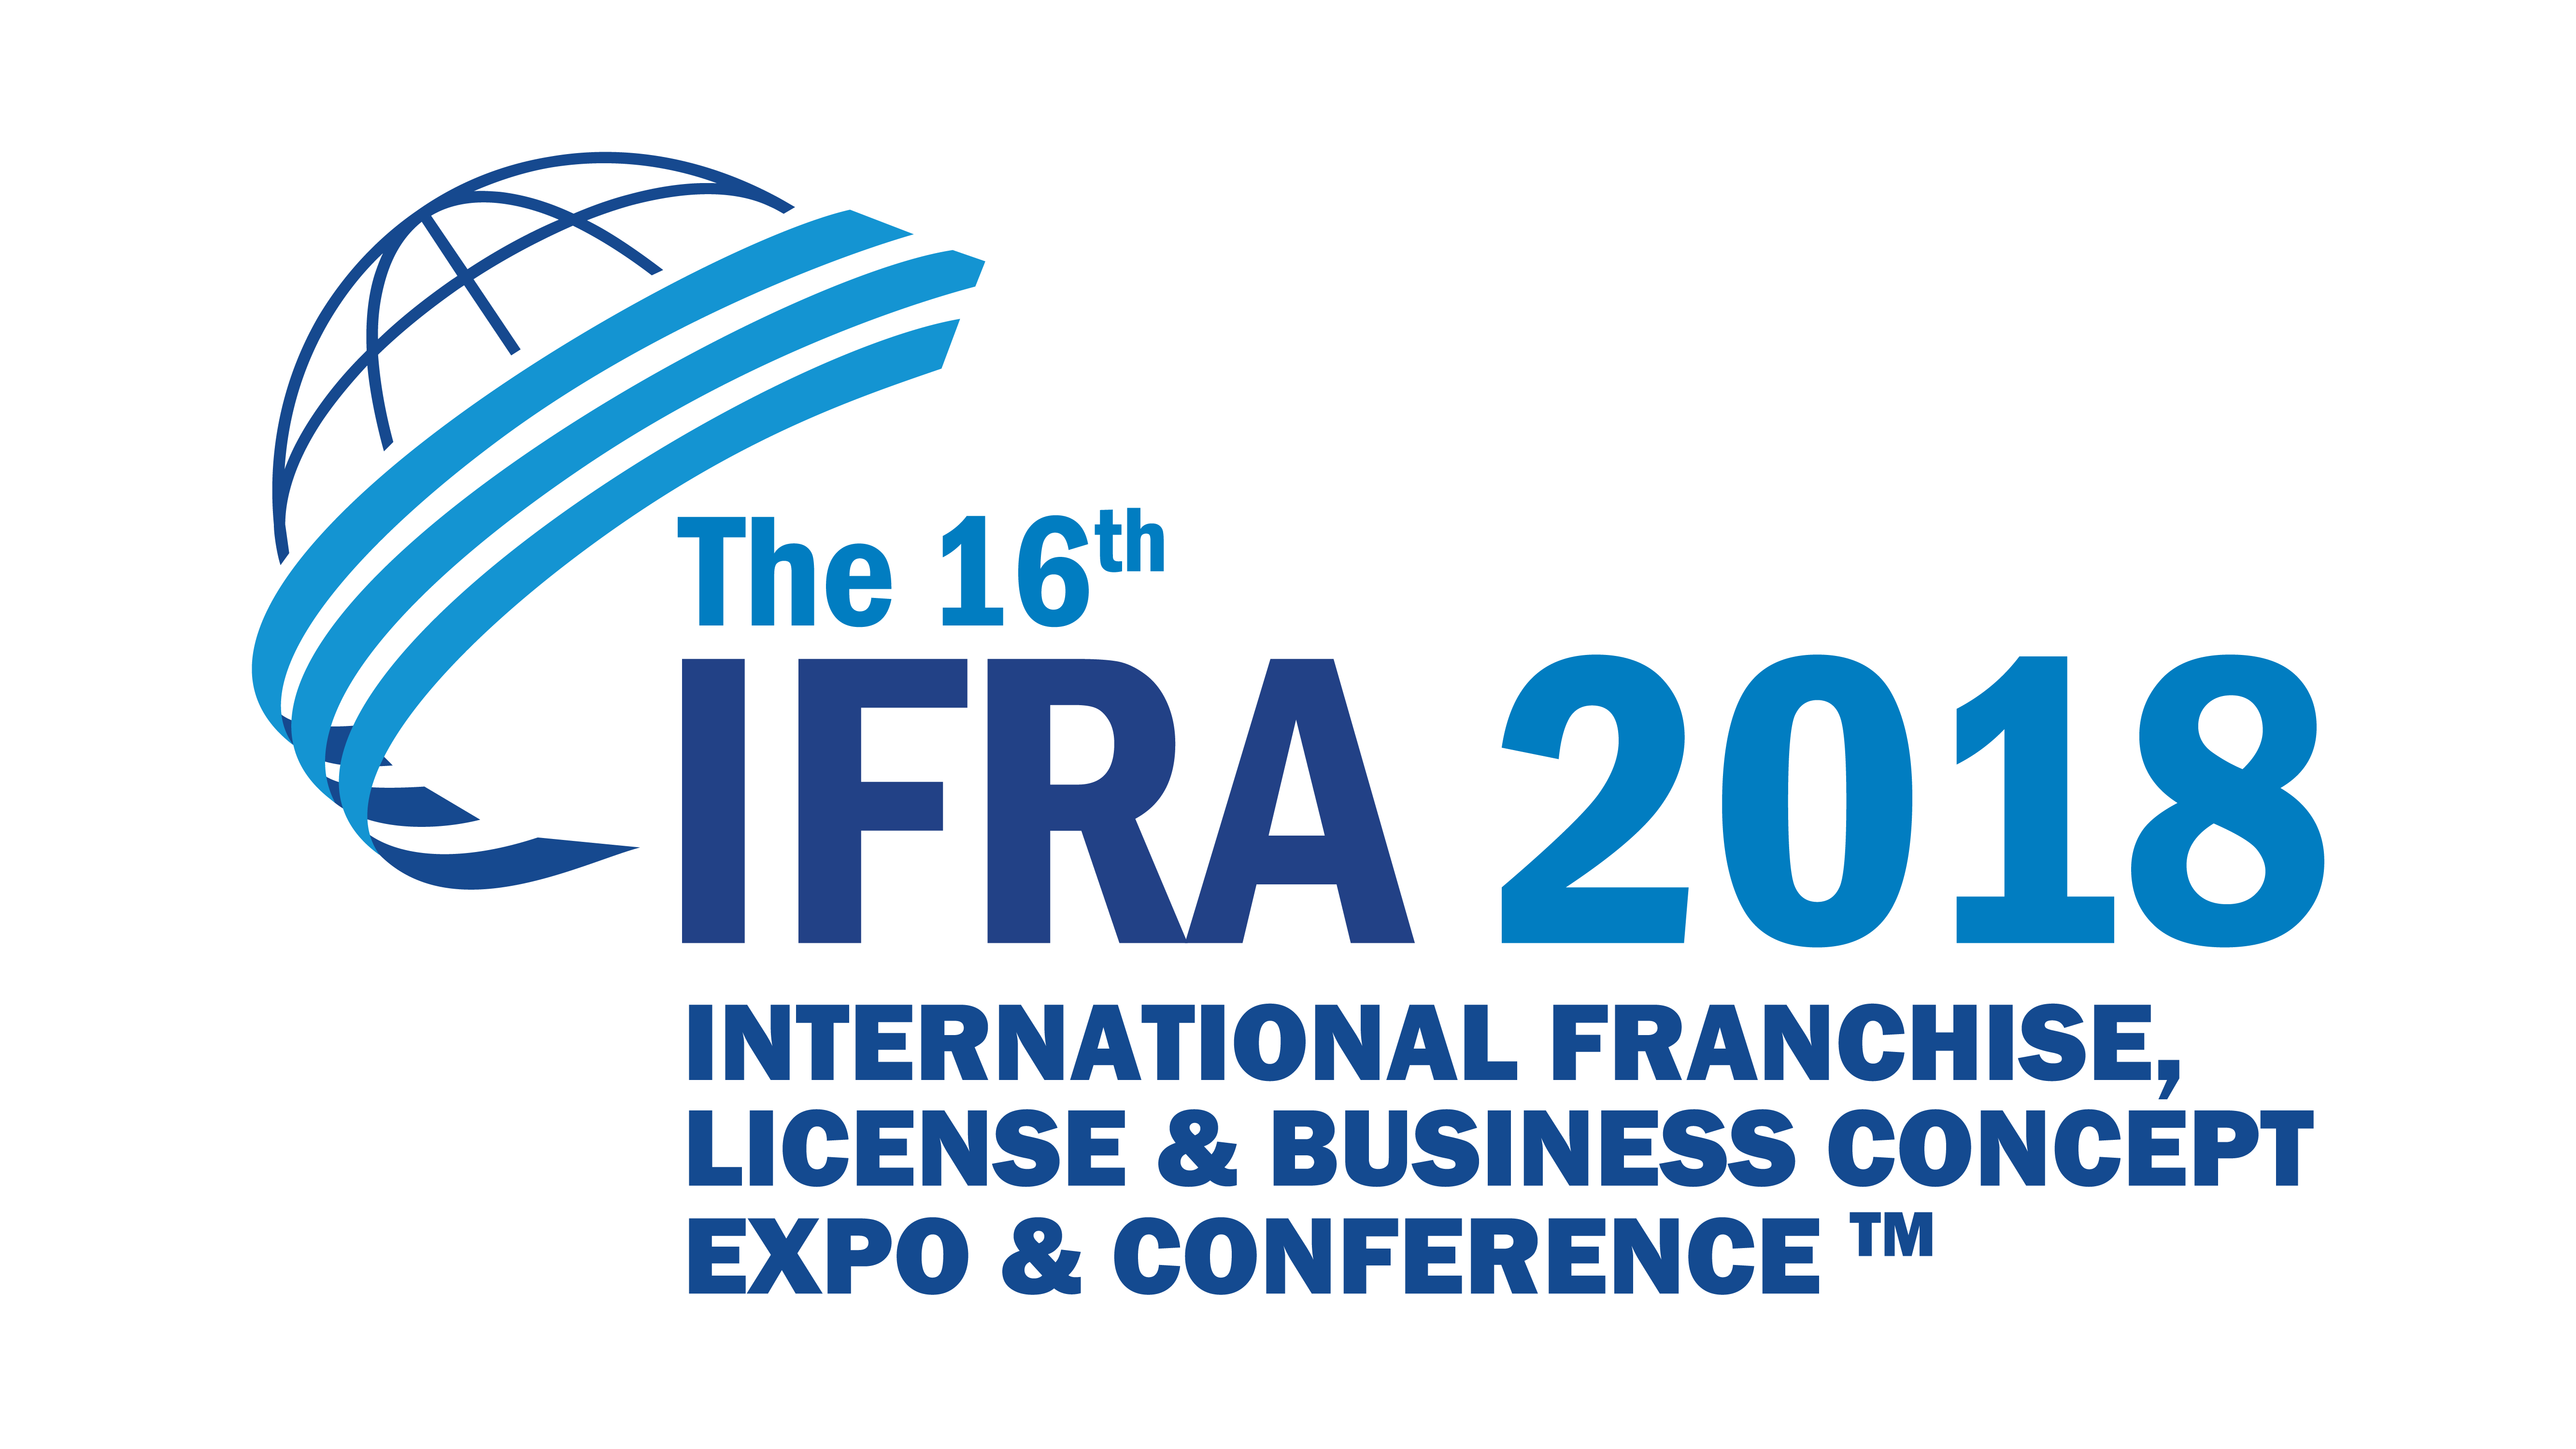 International Franchise, License and Business Concept Expo & Conference (IFRA) 2018